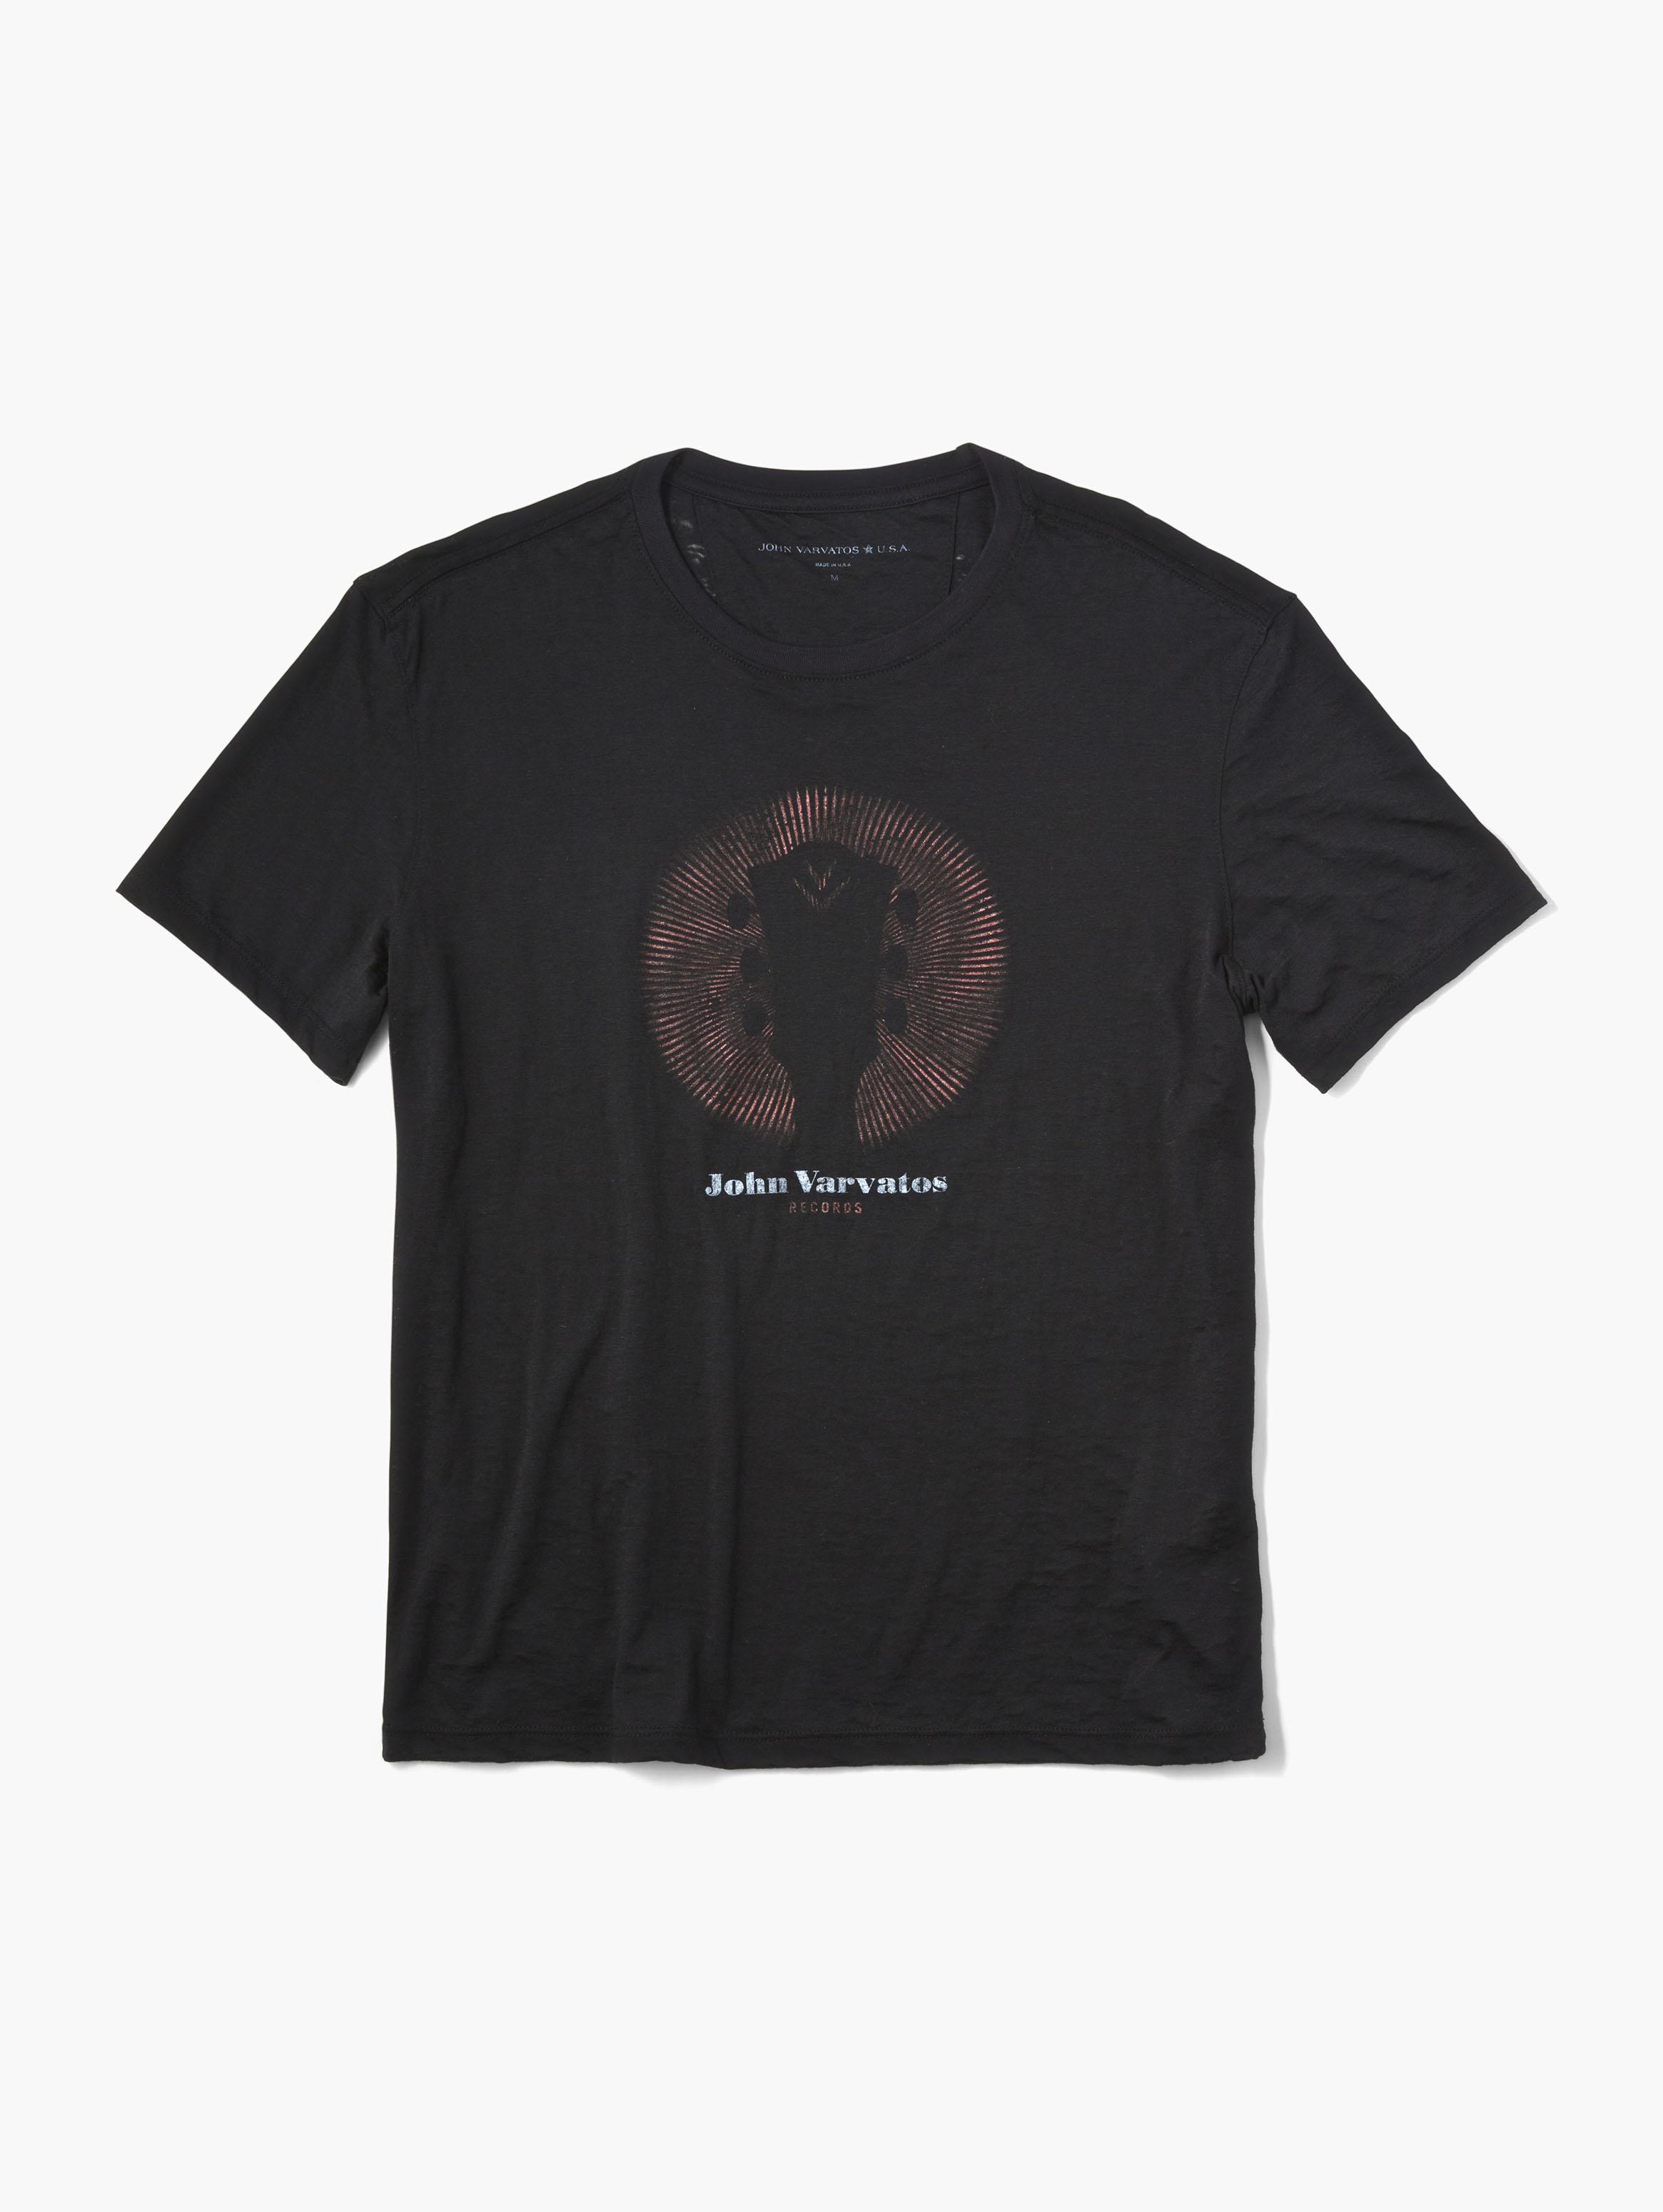 John Varvatos Records Tee